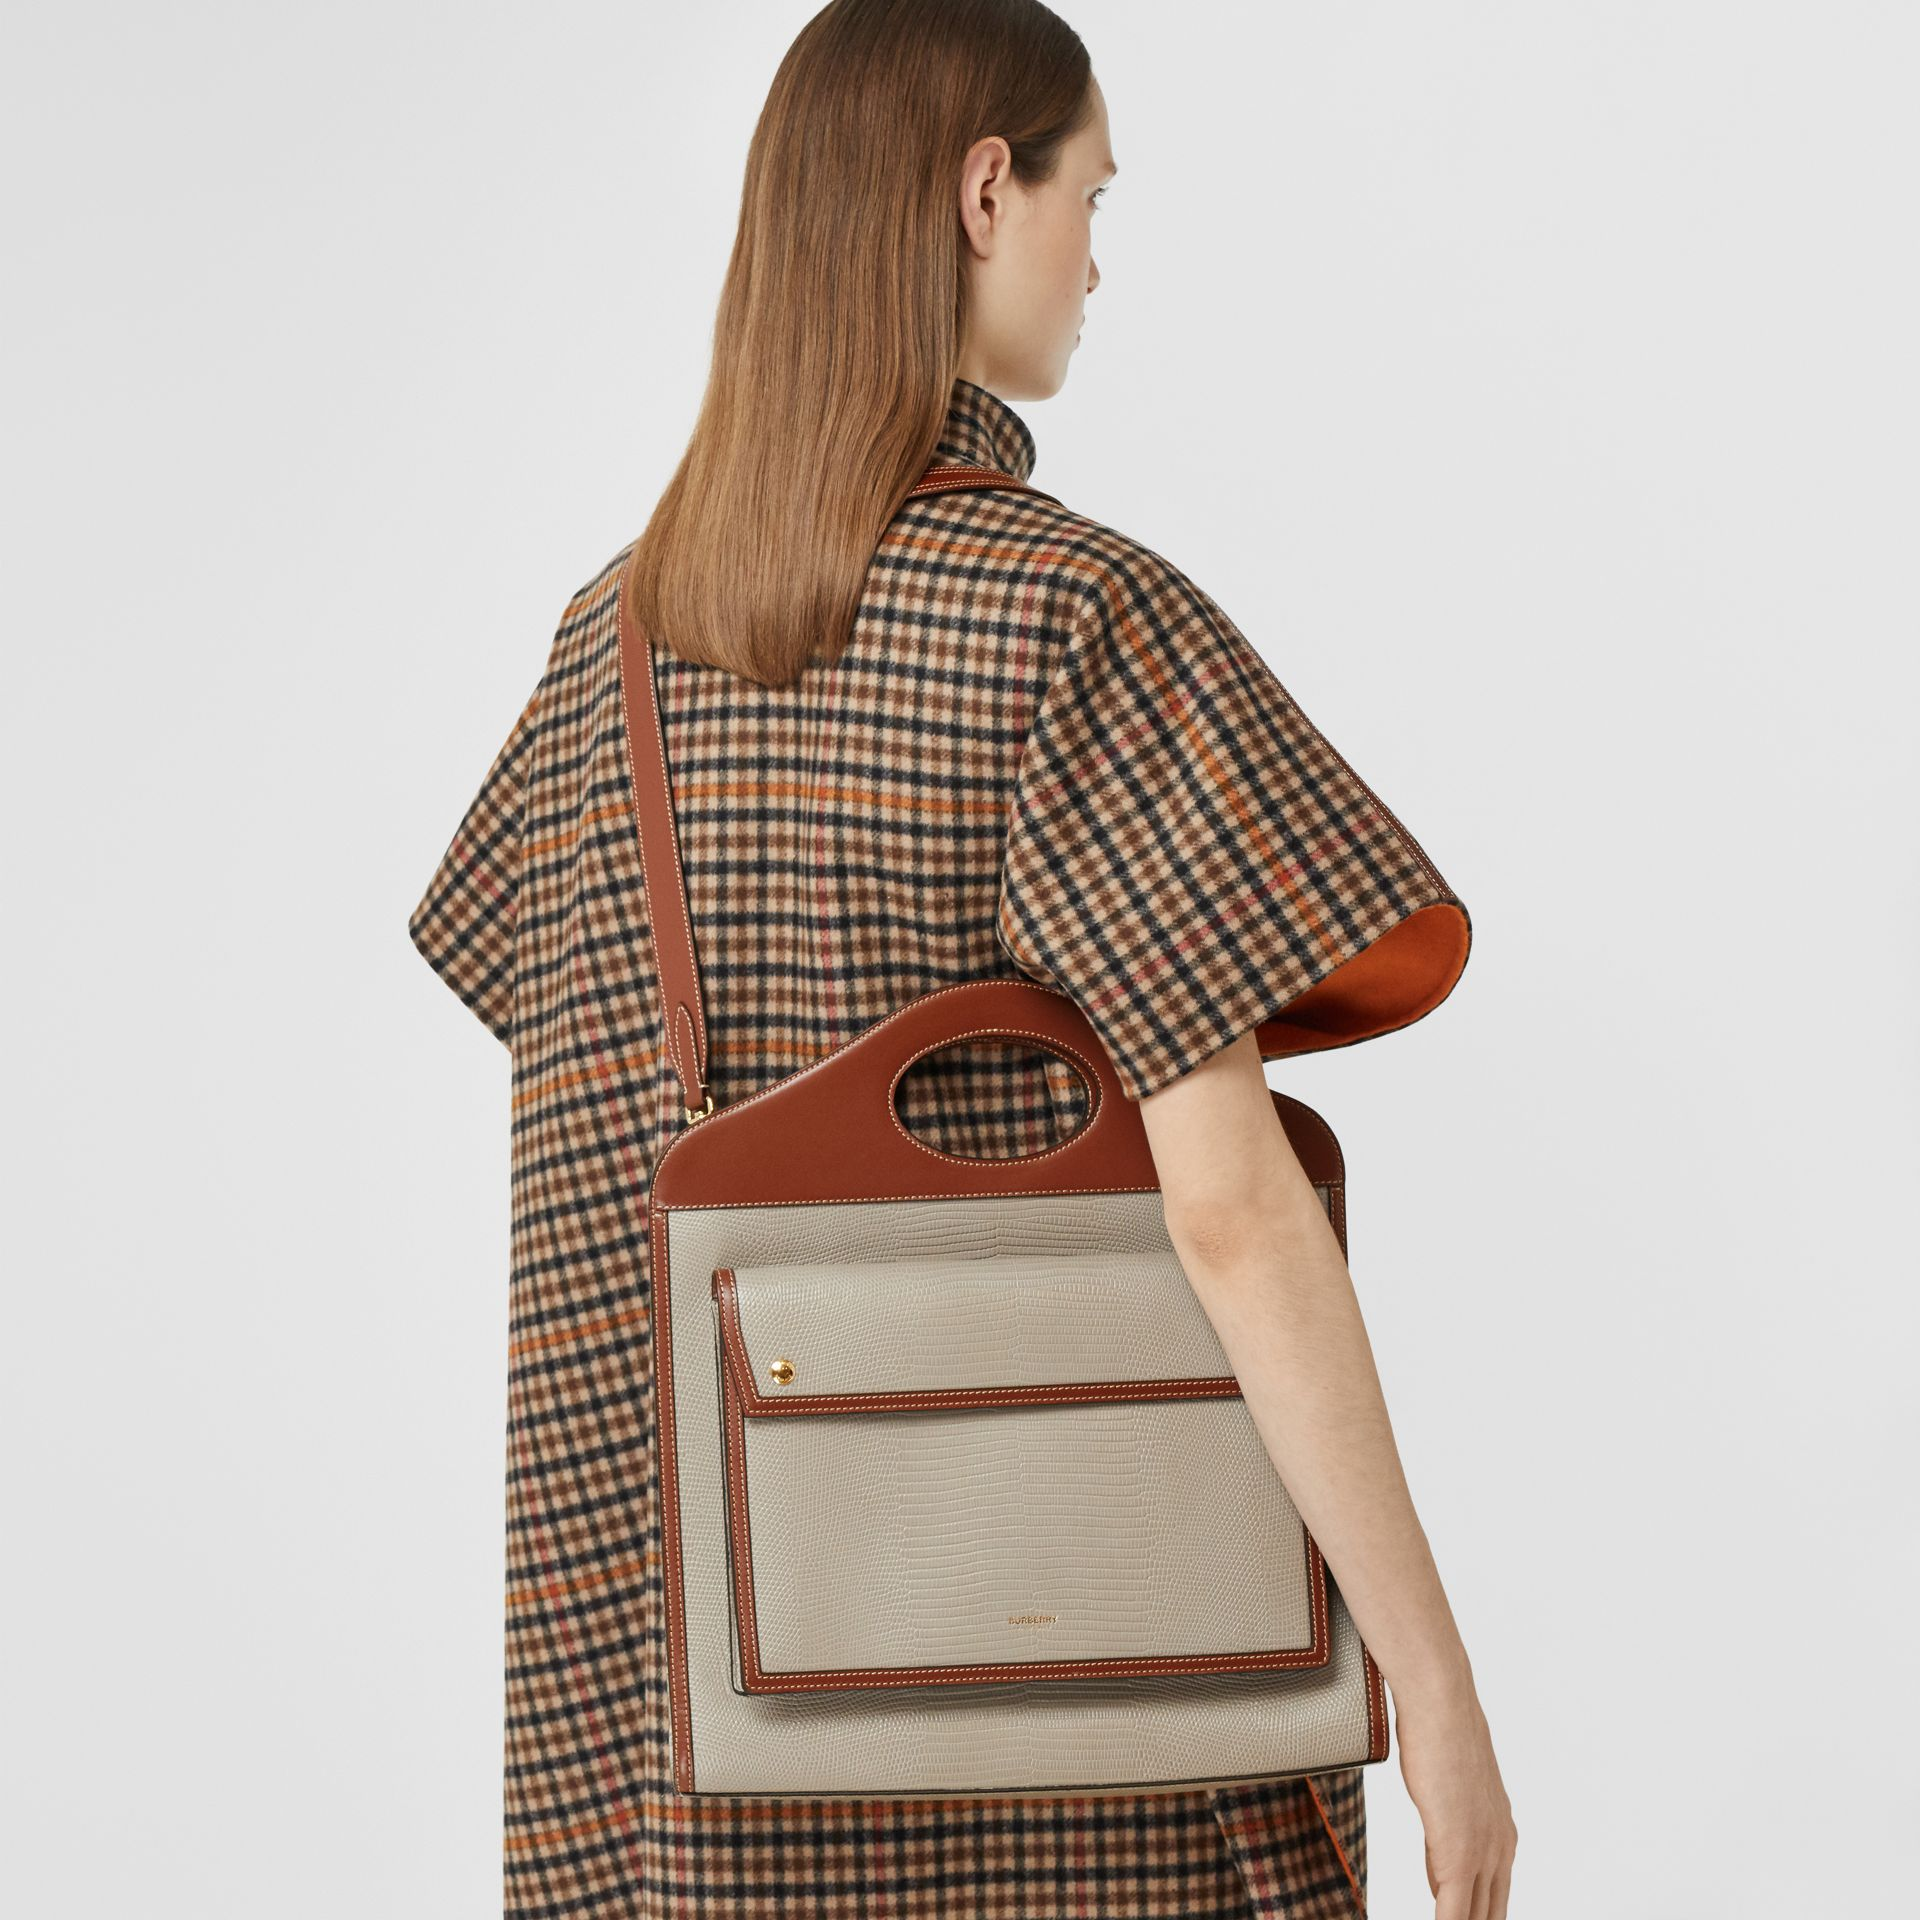 Borsa Pocket media in pelle di cervo goffrata e pelle (Marroncino) | Burberry - immagine della galleria 8